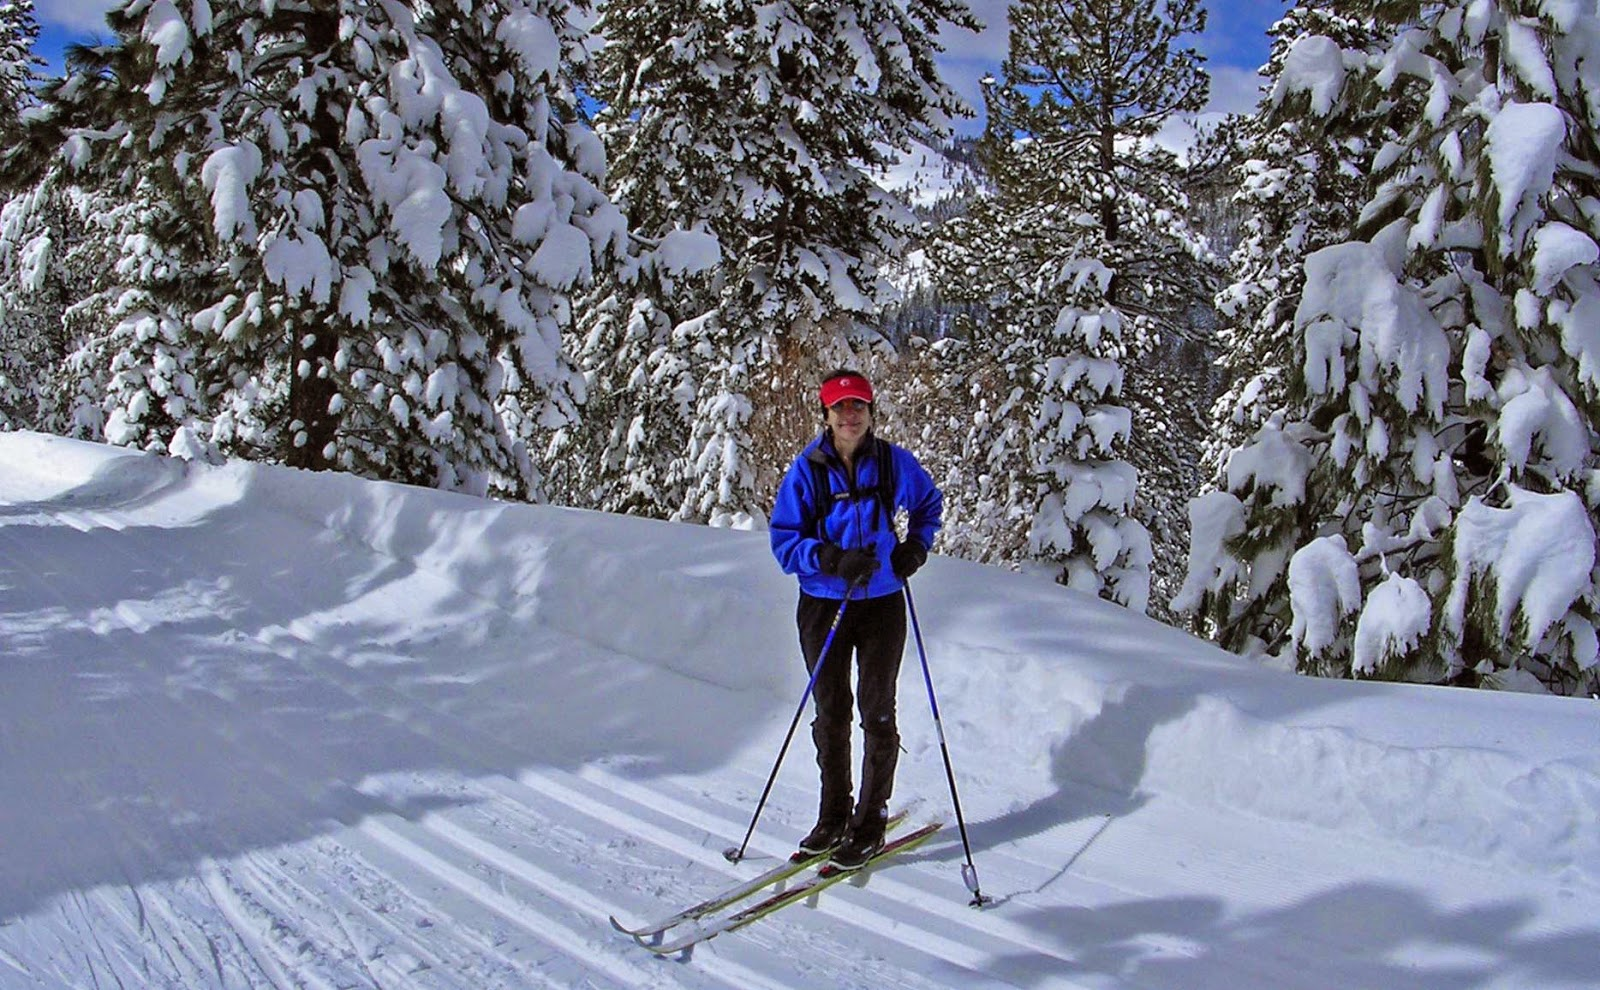 The Tahoe to Truckee Great Ski Race gets cancelled again